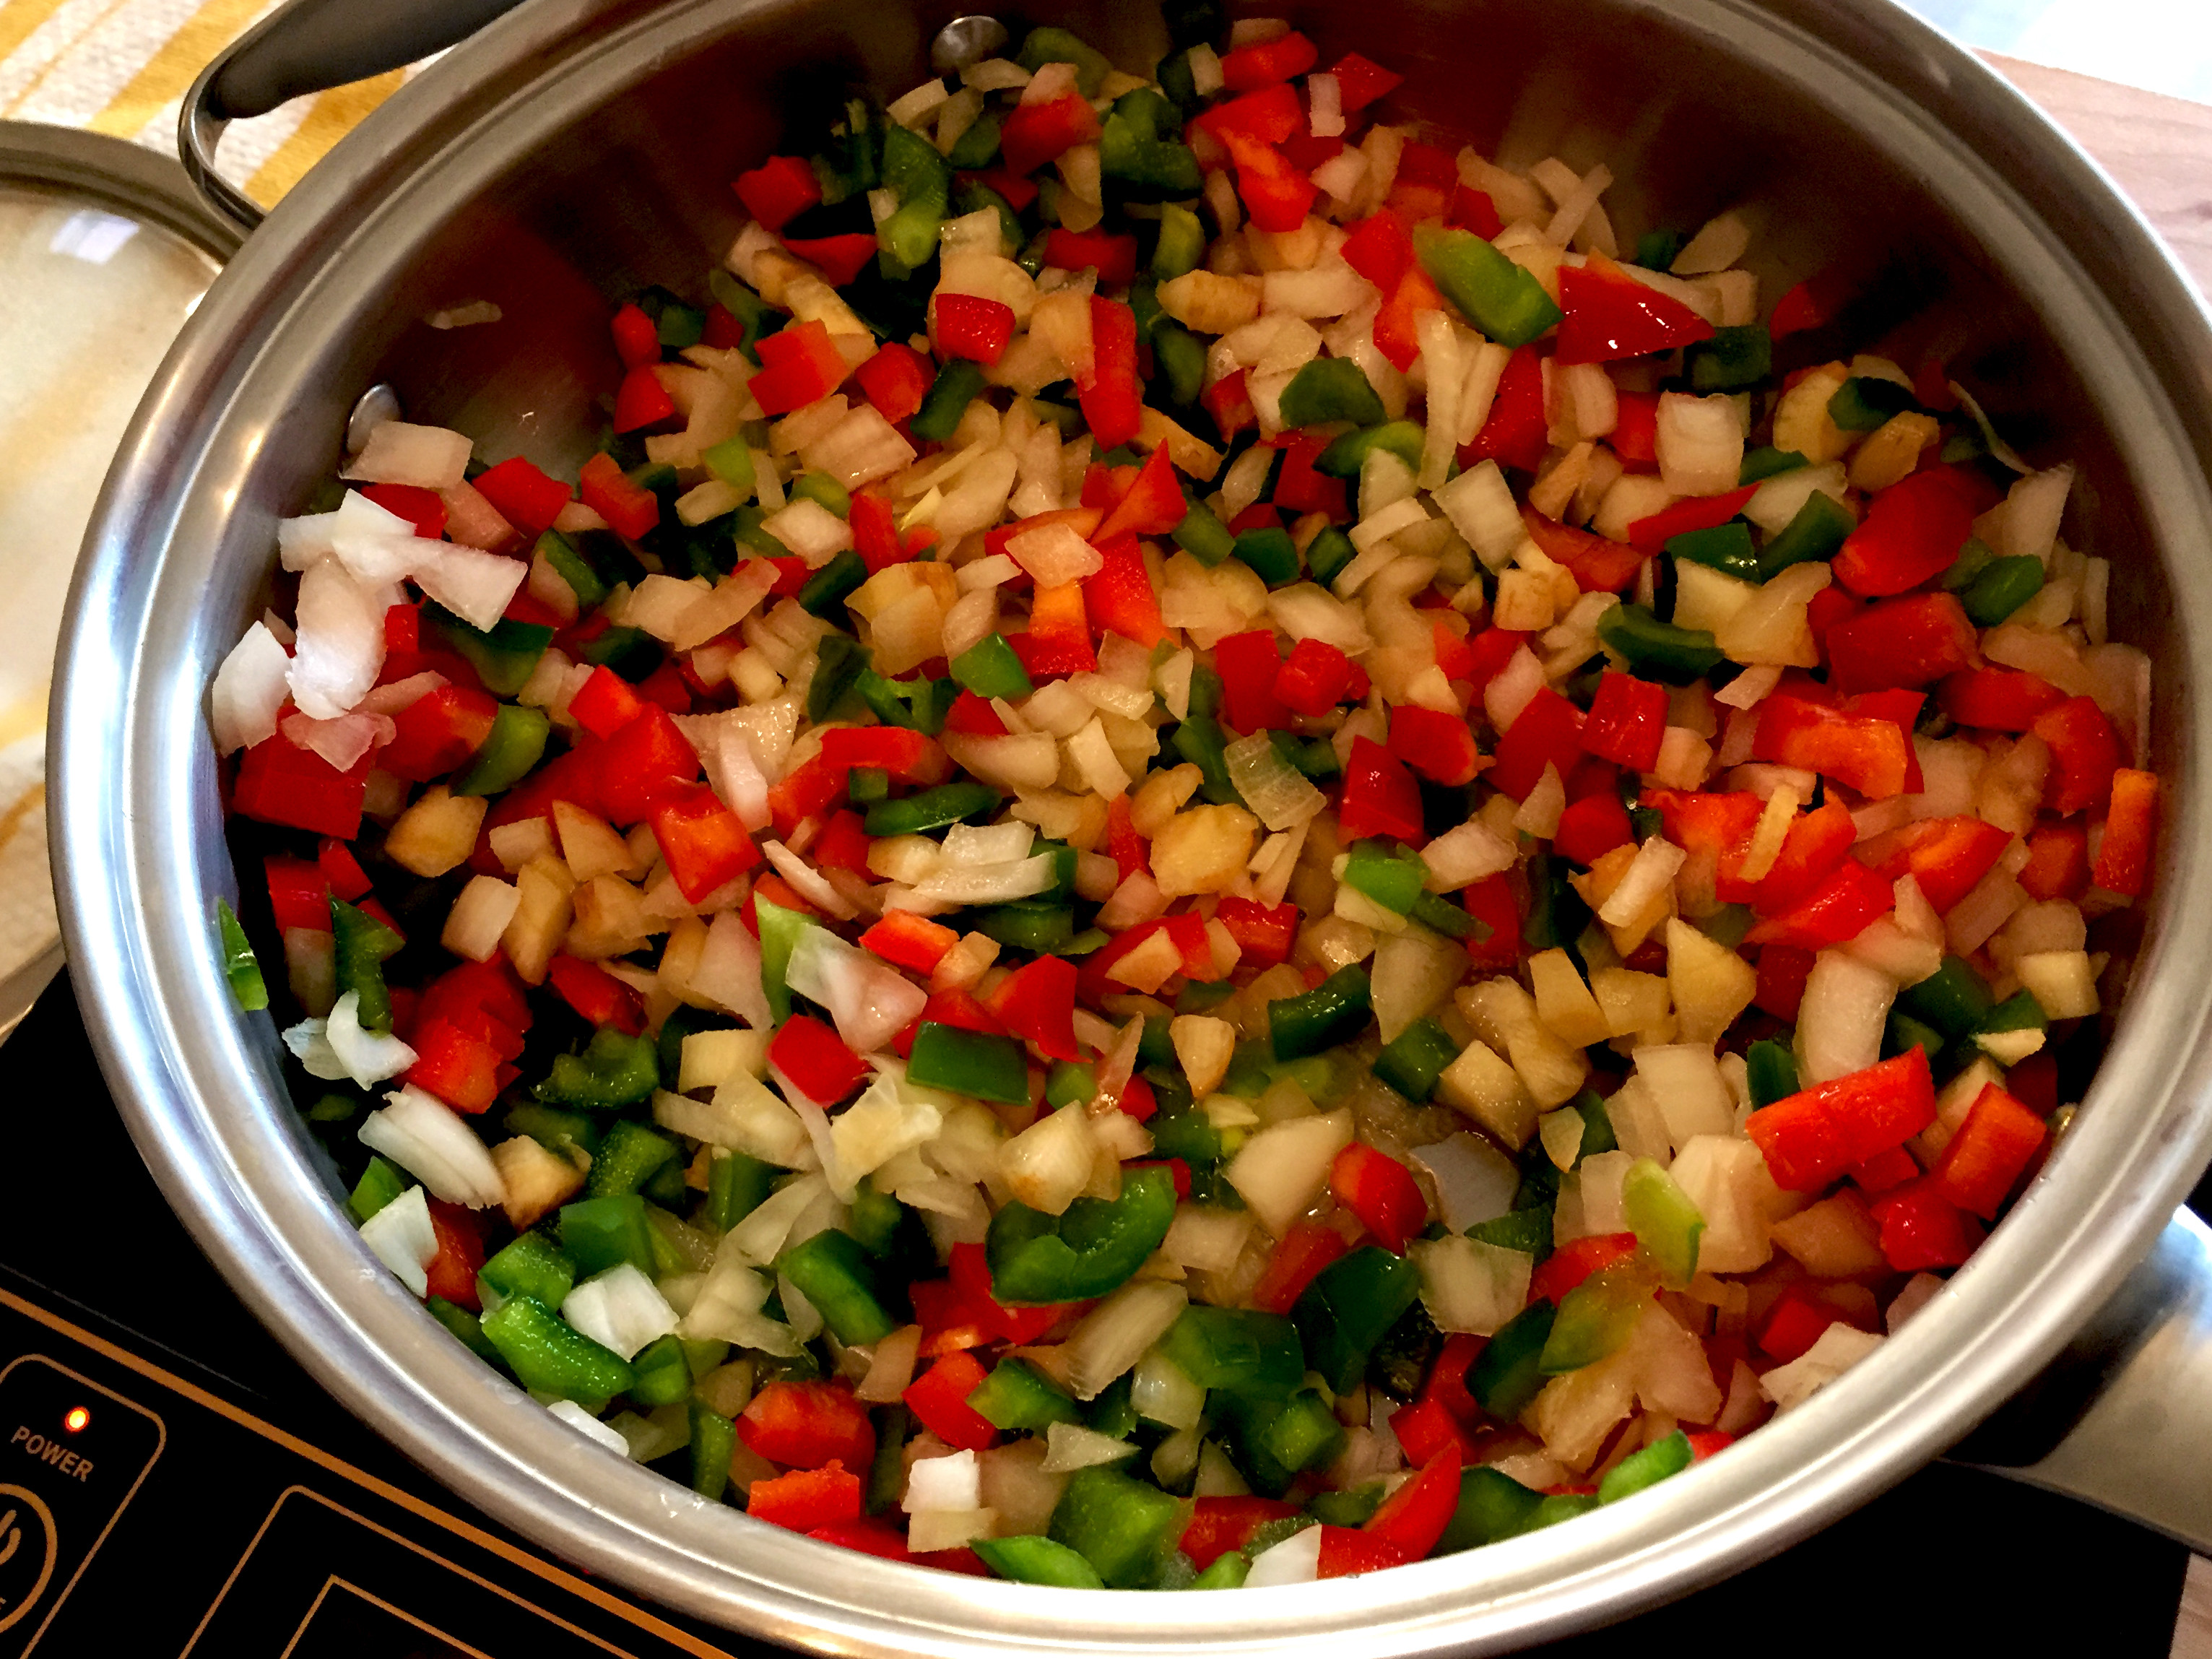 Healthy Red Beans And Rice  Healthy Red Beans and Rice Colorful & Delicious Creole